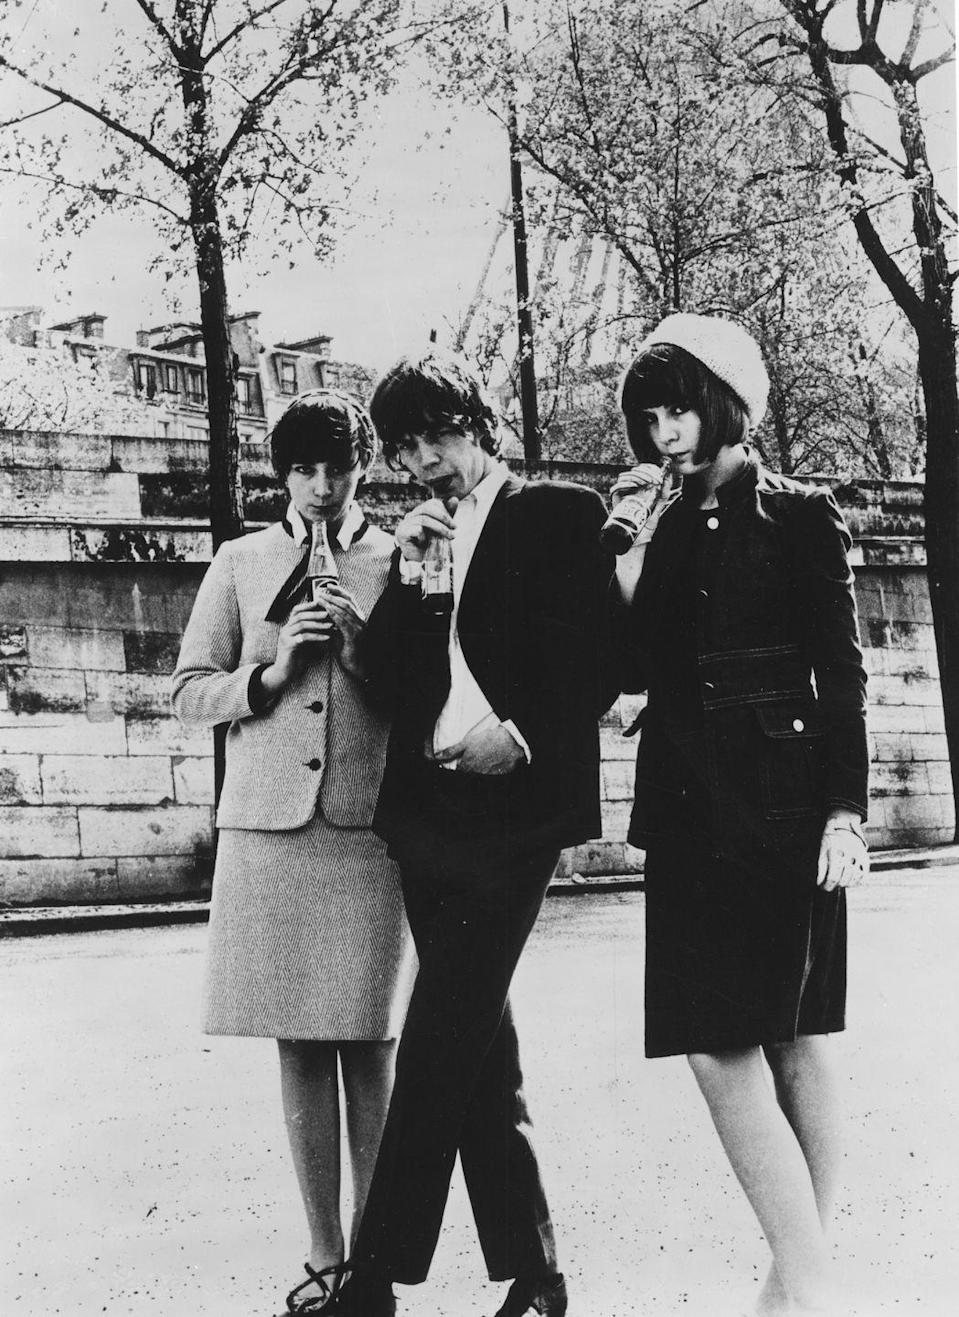 <p>Mick Jagger poses with two models drinking soda pop while in Paris, 1966. </p>